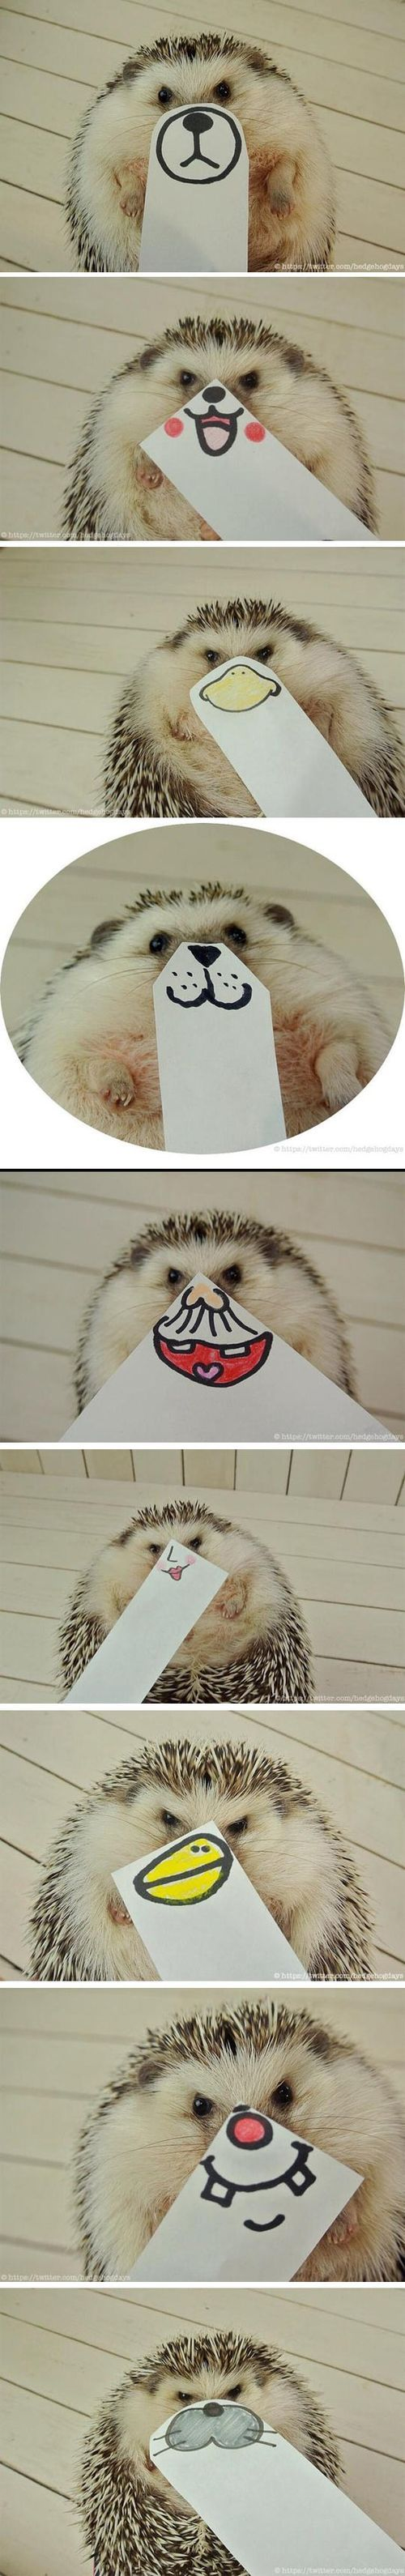 The Many Faces Of a Hedgehog